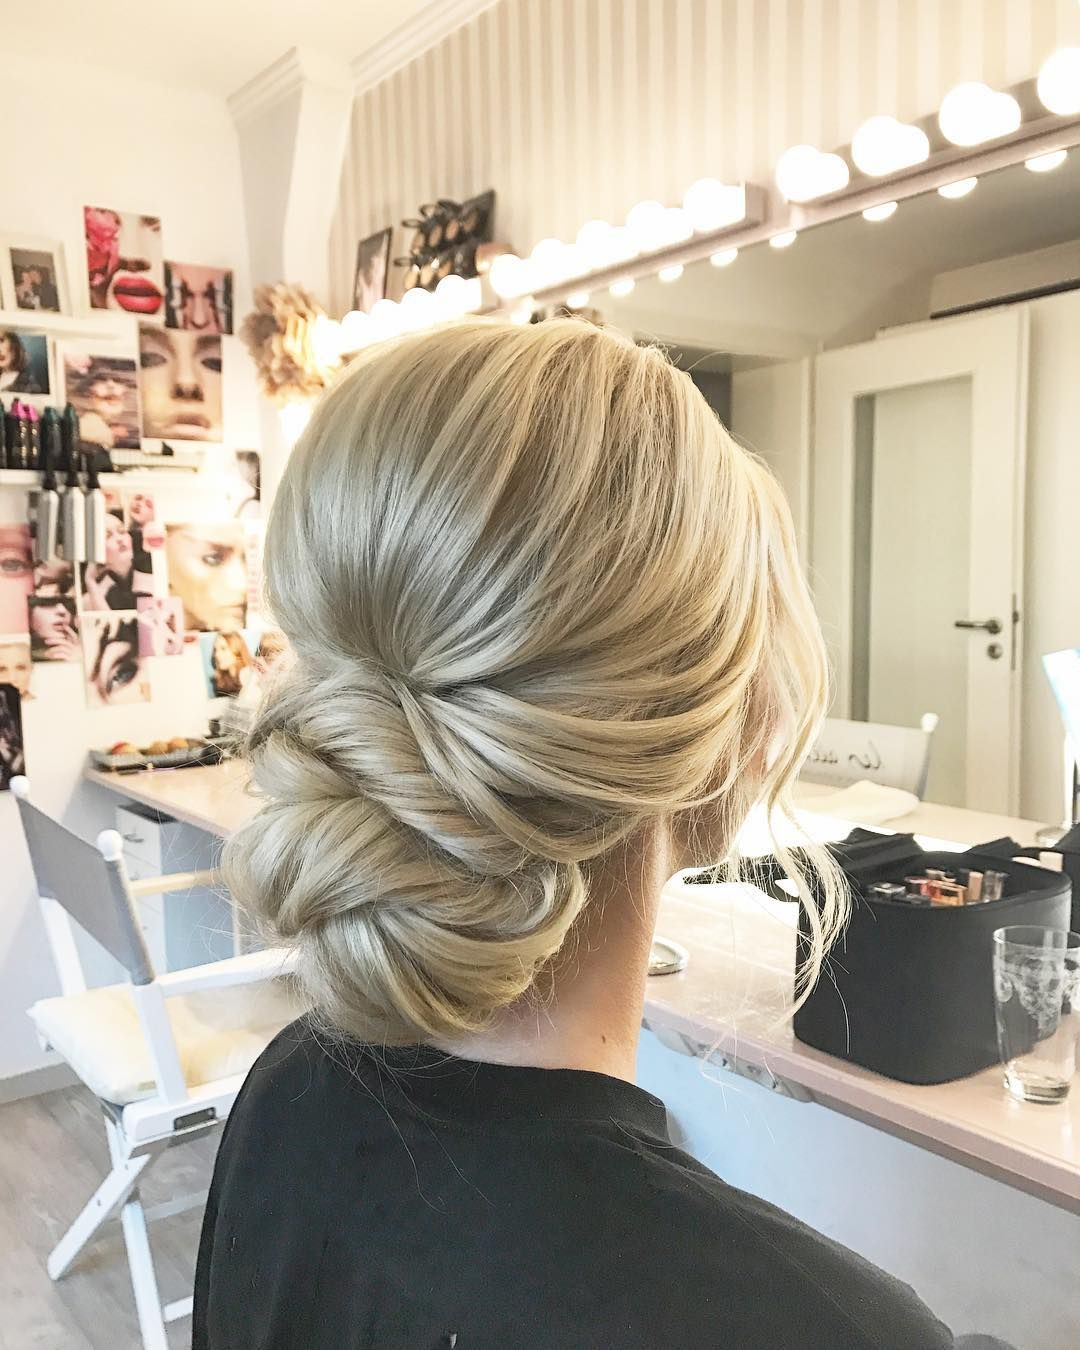 100 Gorgeous Wedding Hair From Ceremony To Reception #weddinghairstylesupdo